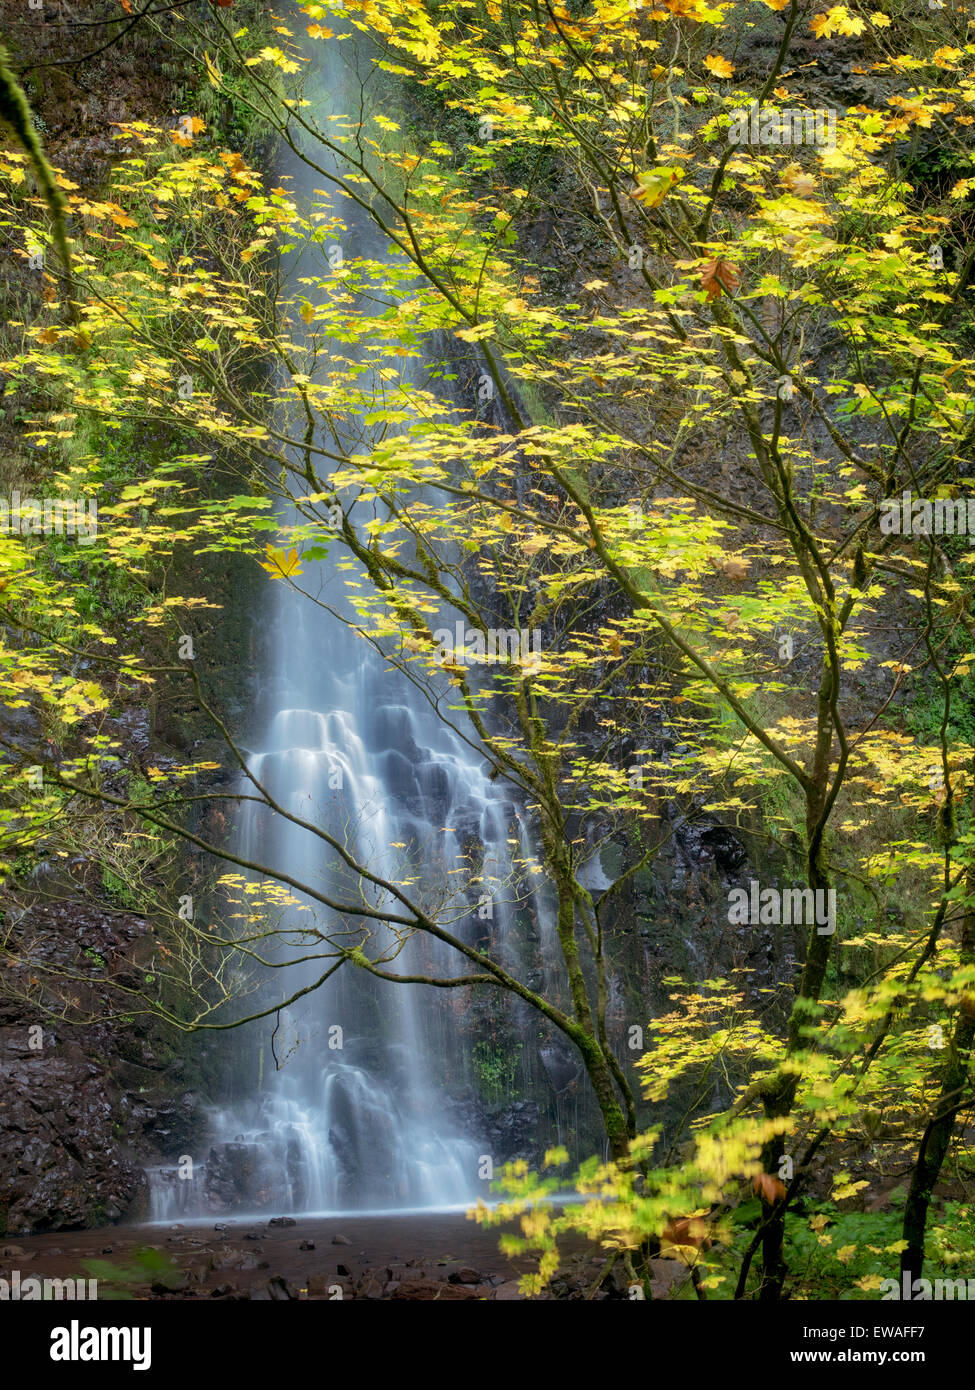 Double Falls and fall color. Silver Falls State Park, Oregon - Stock Image